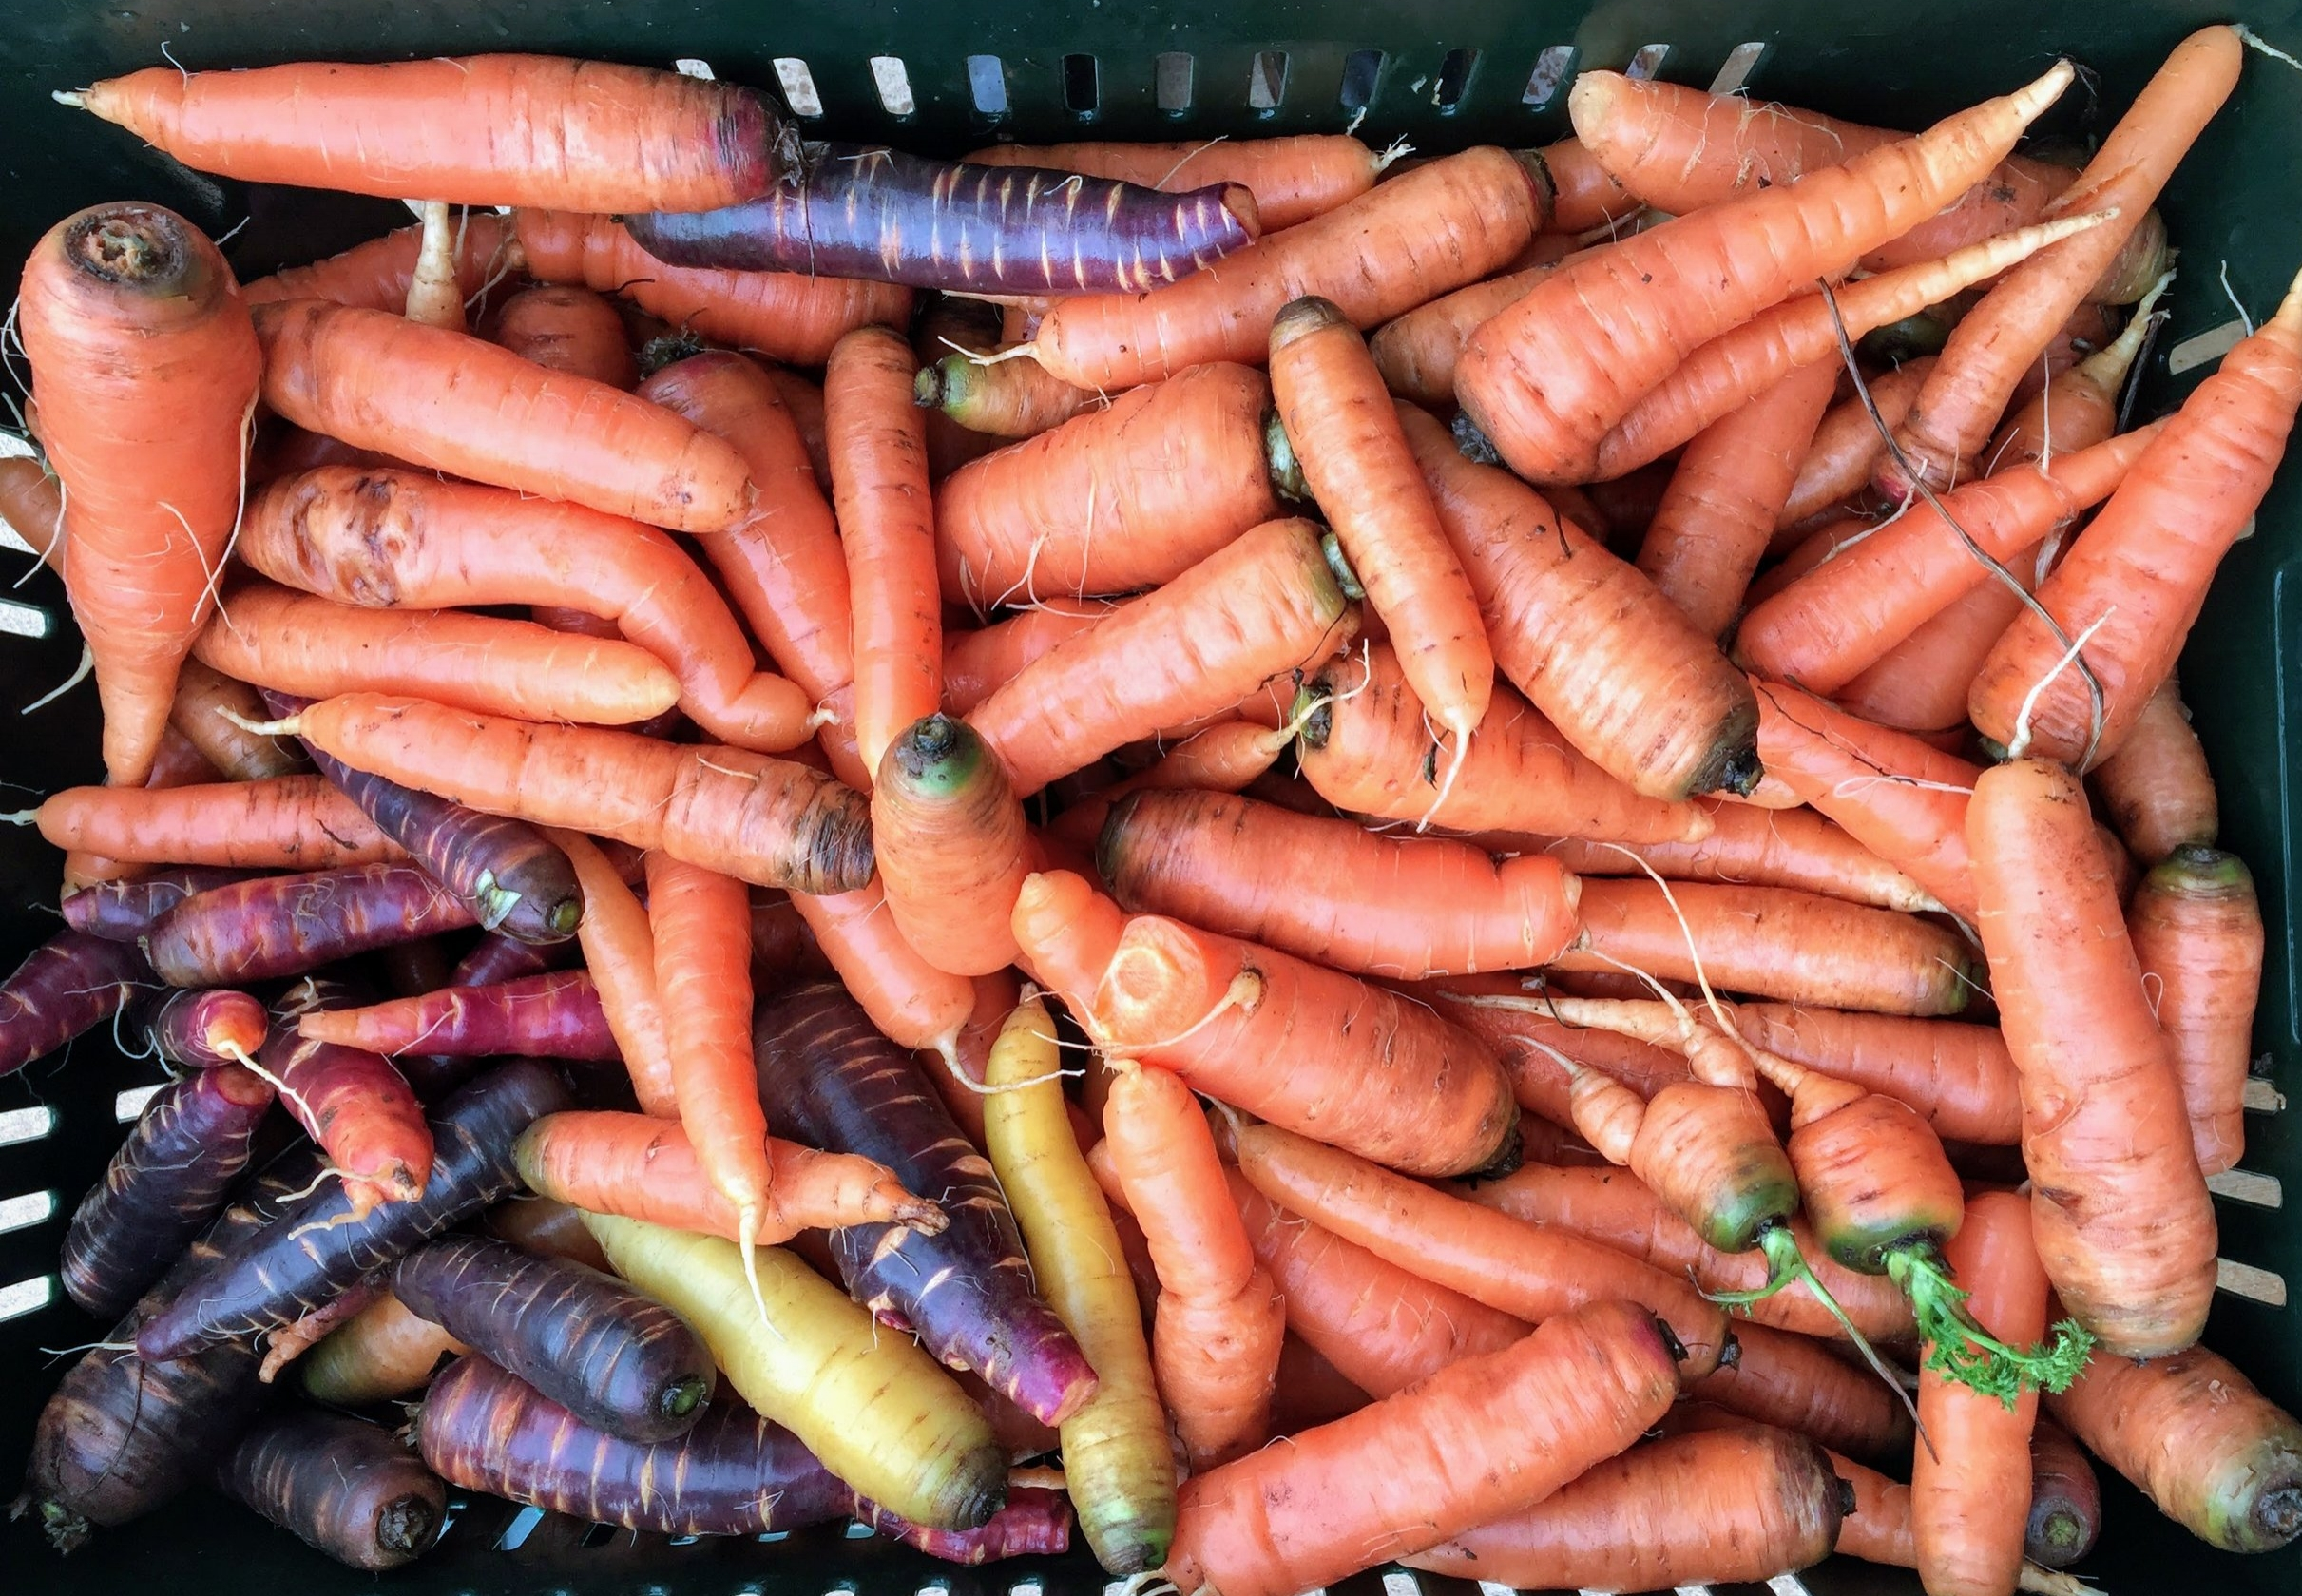 1. Access to high-quality, flavor-rich,produce. - Harvested fresh before delivery, you can taste (and see!) the difference in the quality of our produce. After the first crunch into our purple carrots or a BLT bite made with our spicy mustard greens, you'll never return to wilted store produce!